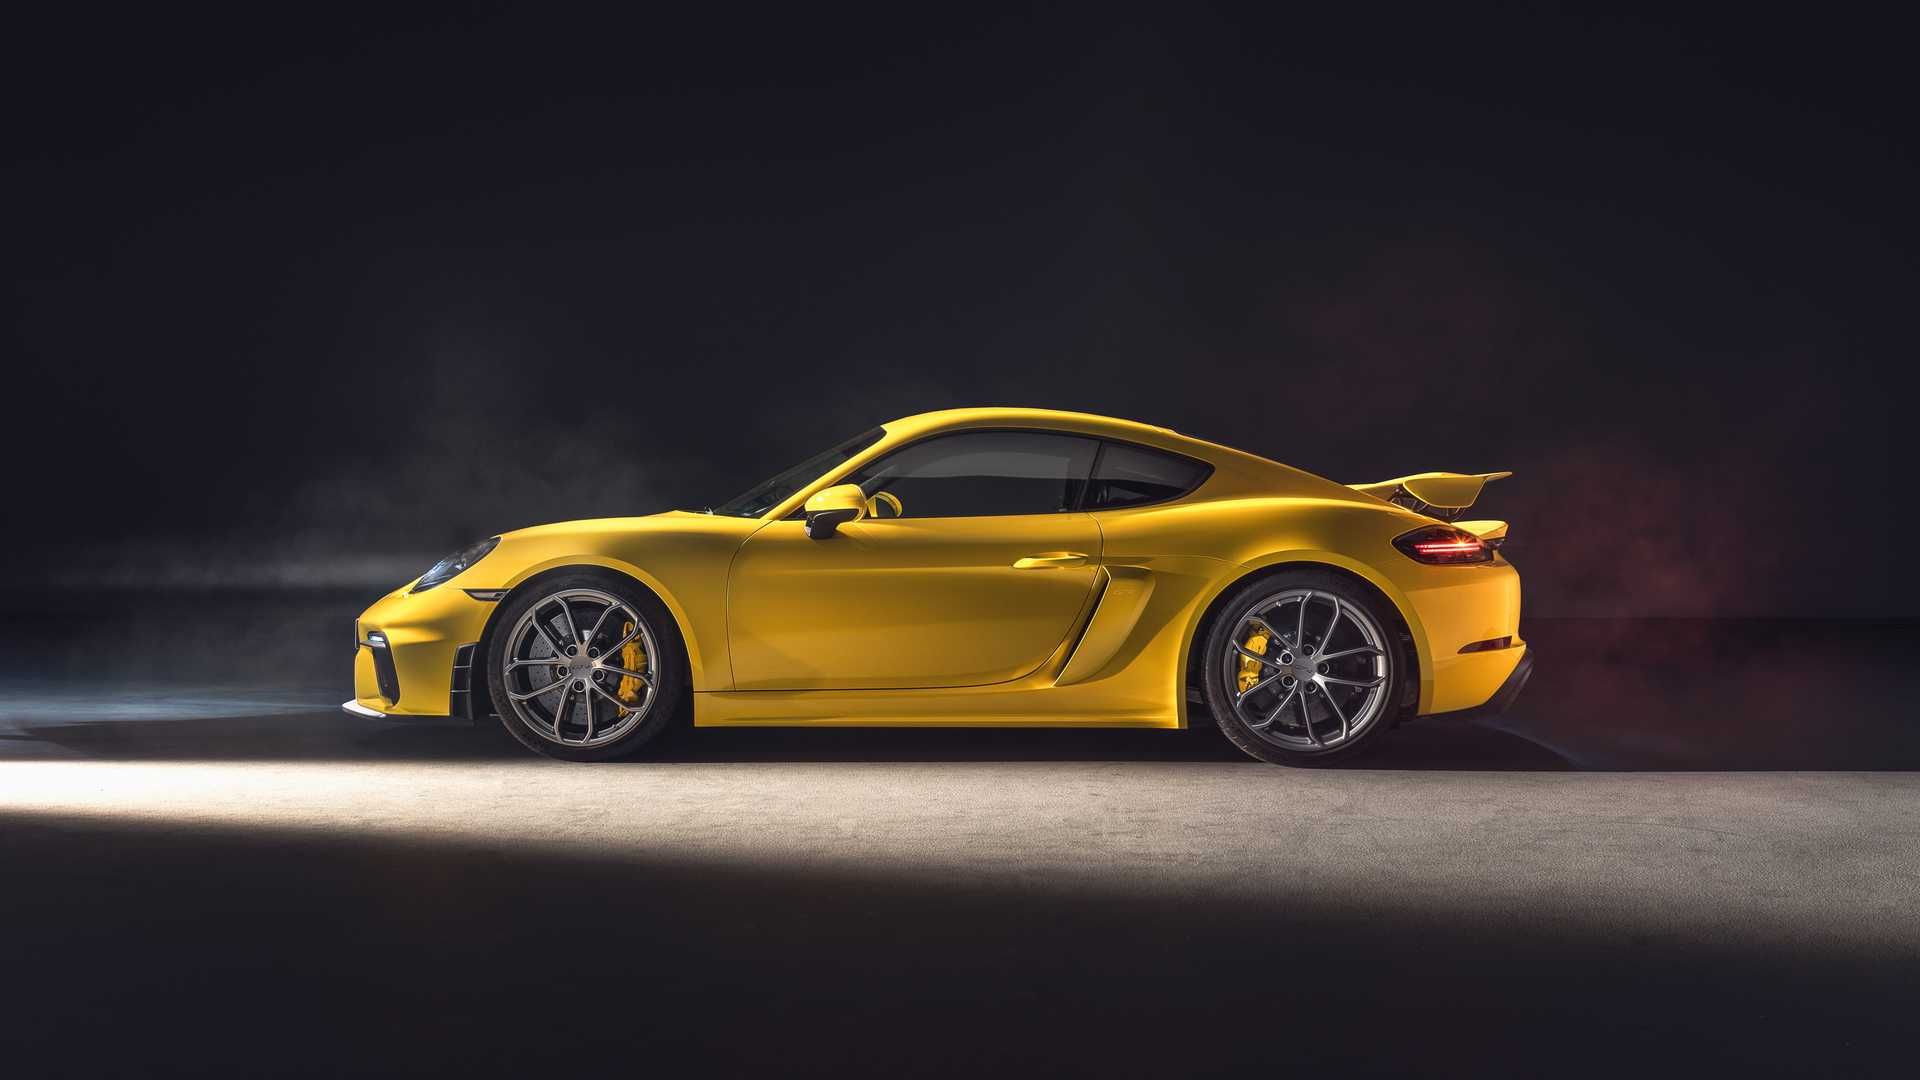 The GT4 represents the entry-level GT road model from Porsche